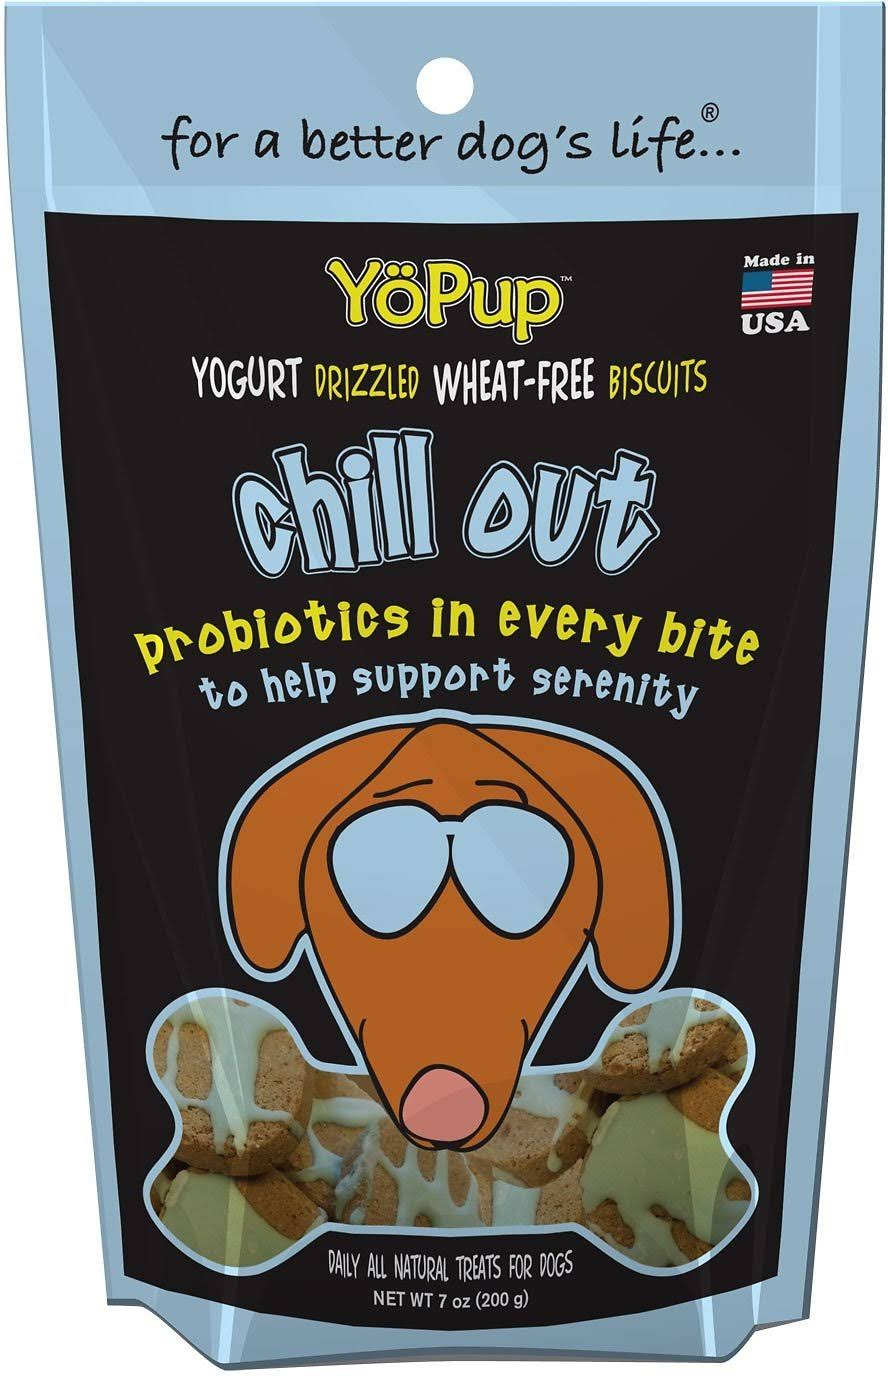 Yopup Chill Out Dog Treats - Yogurt Drizzled Wheat-free Biscuits